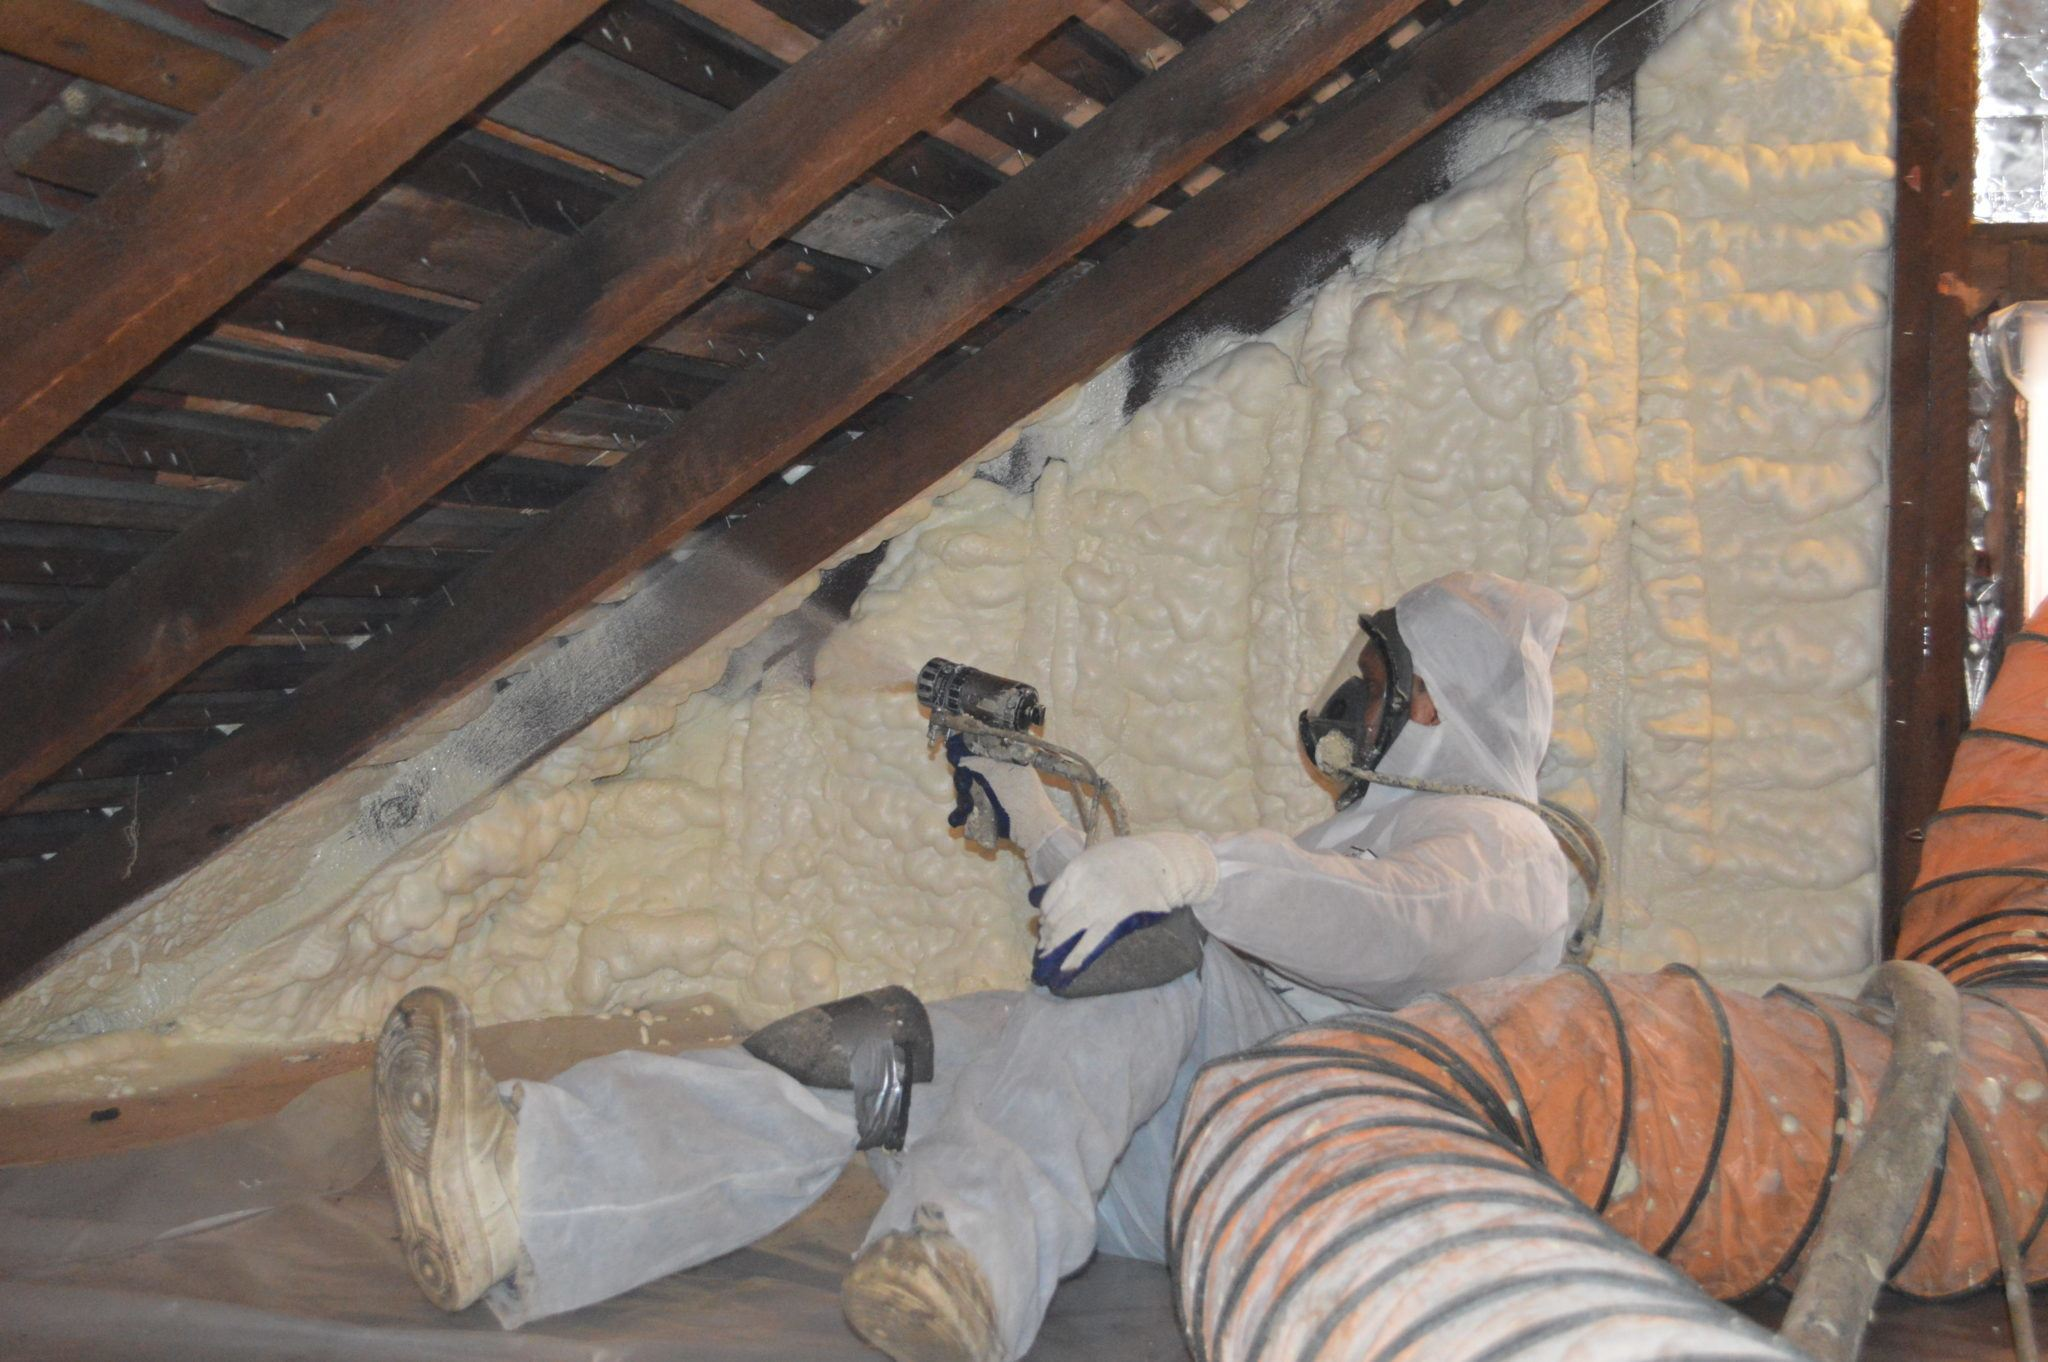 Icynene Spray Foam Insulation